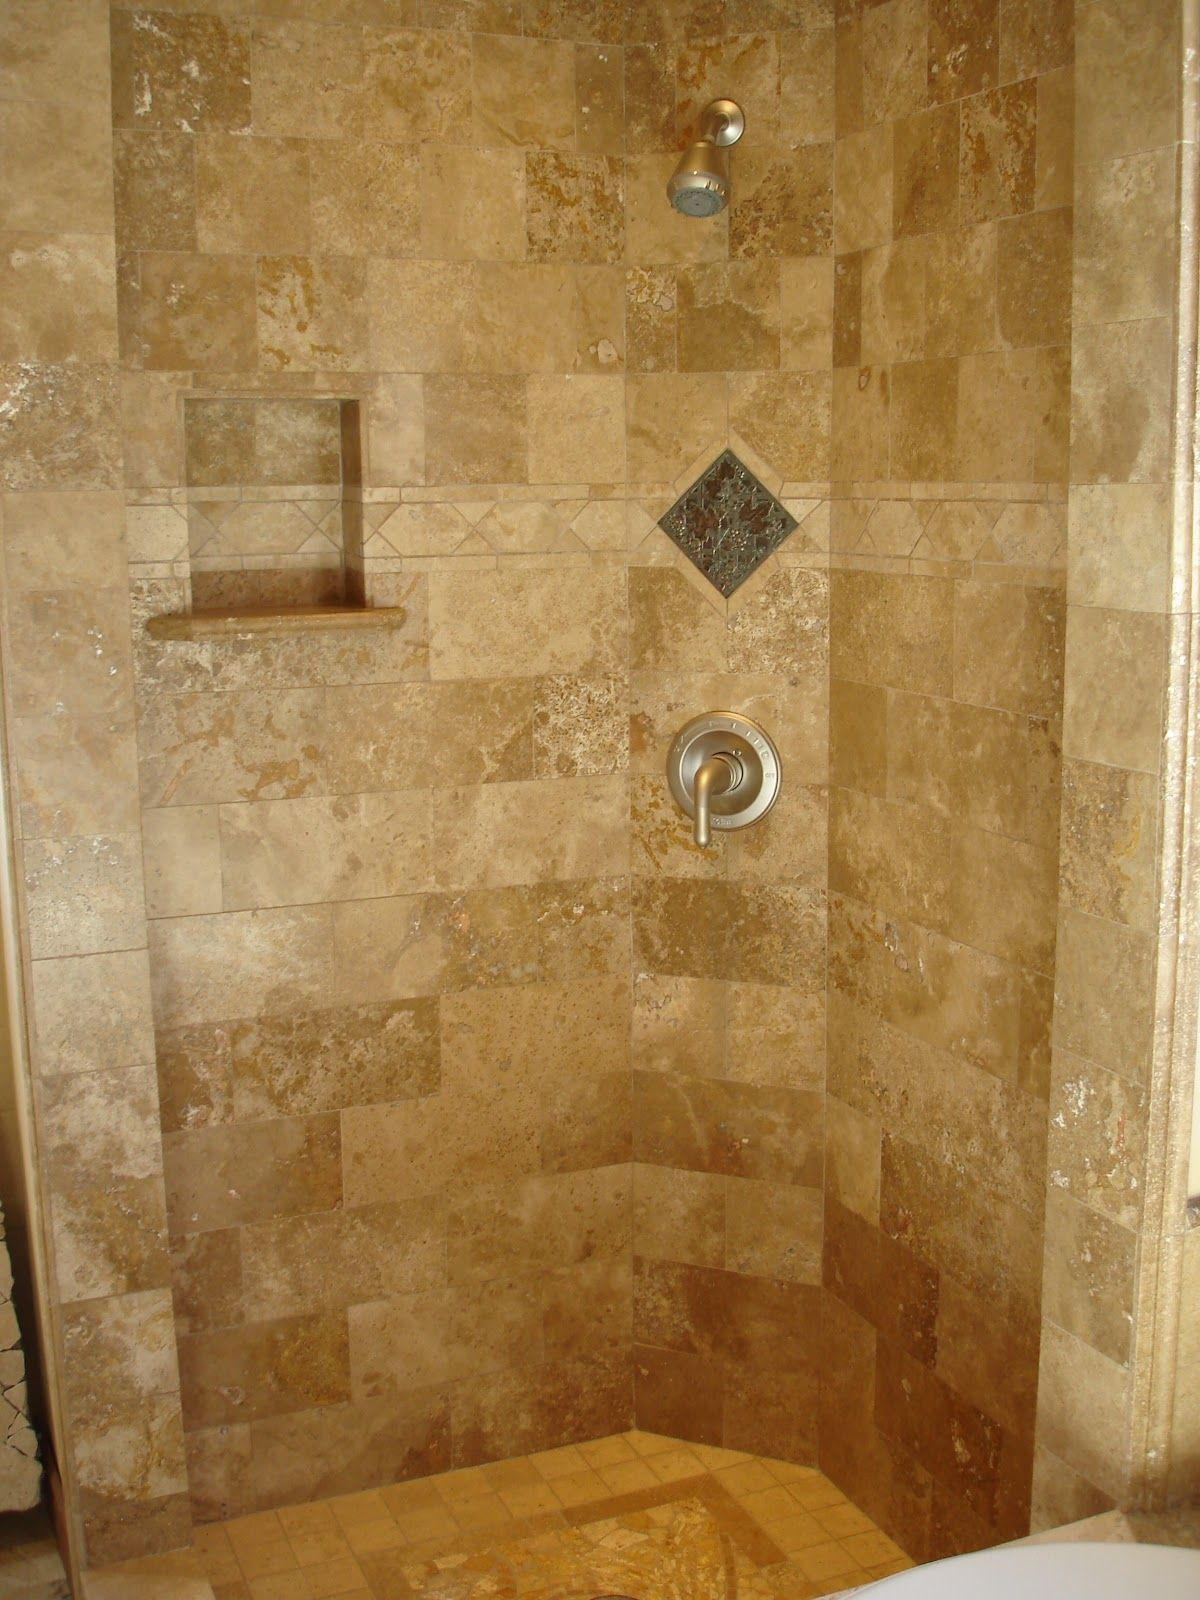 shower tile designs patterns Bathroom Tile Patterns